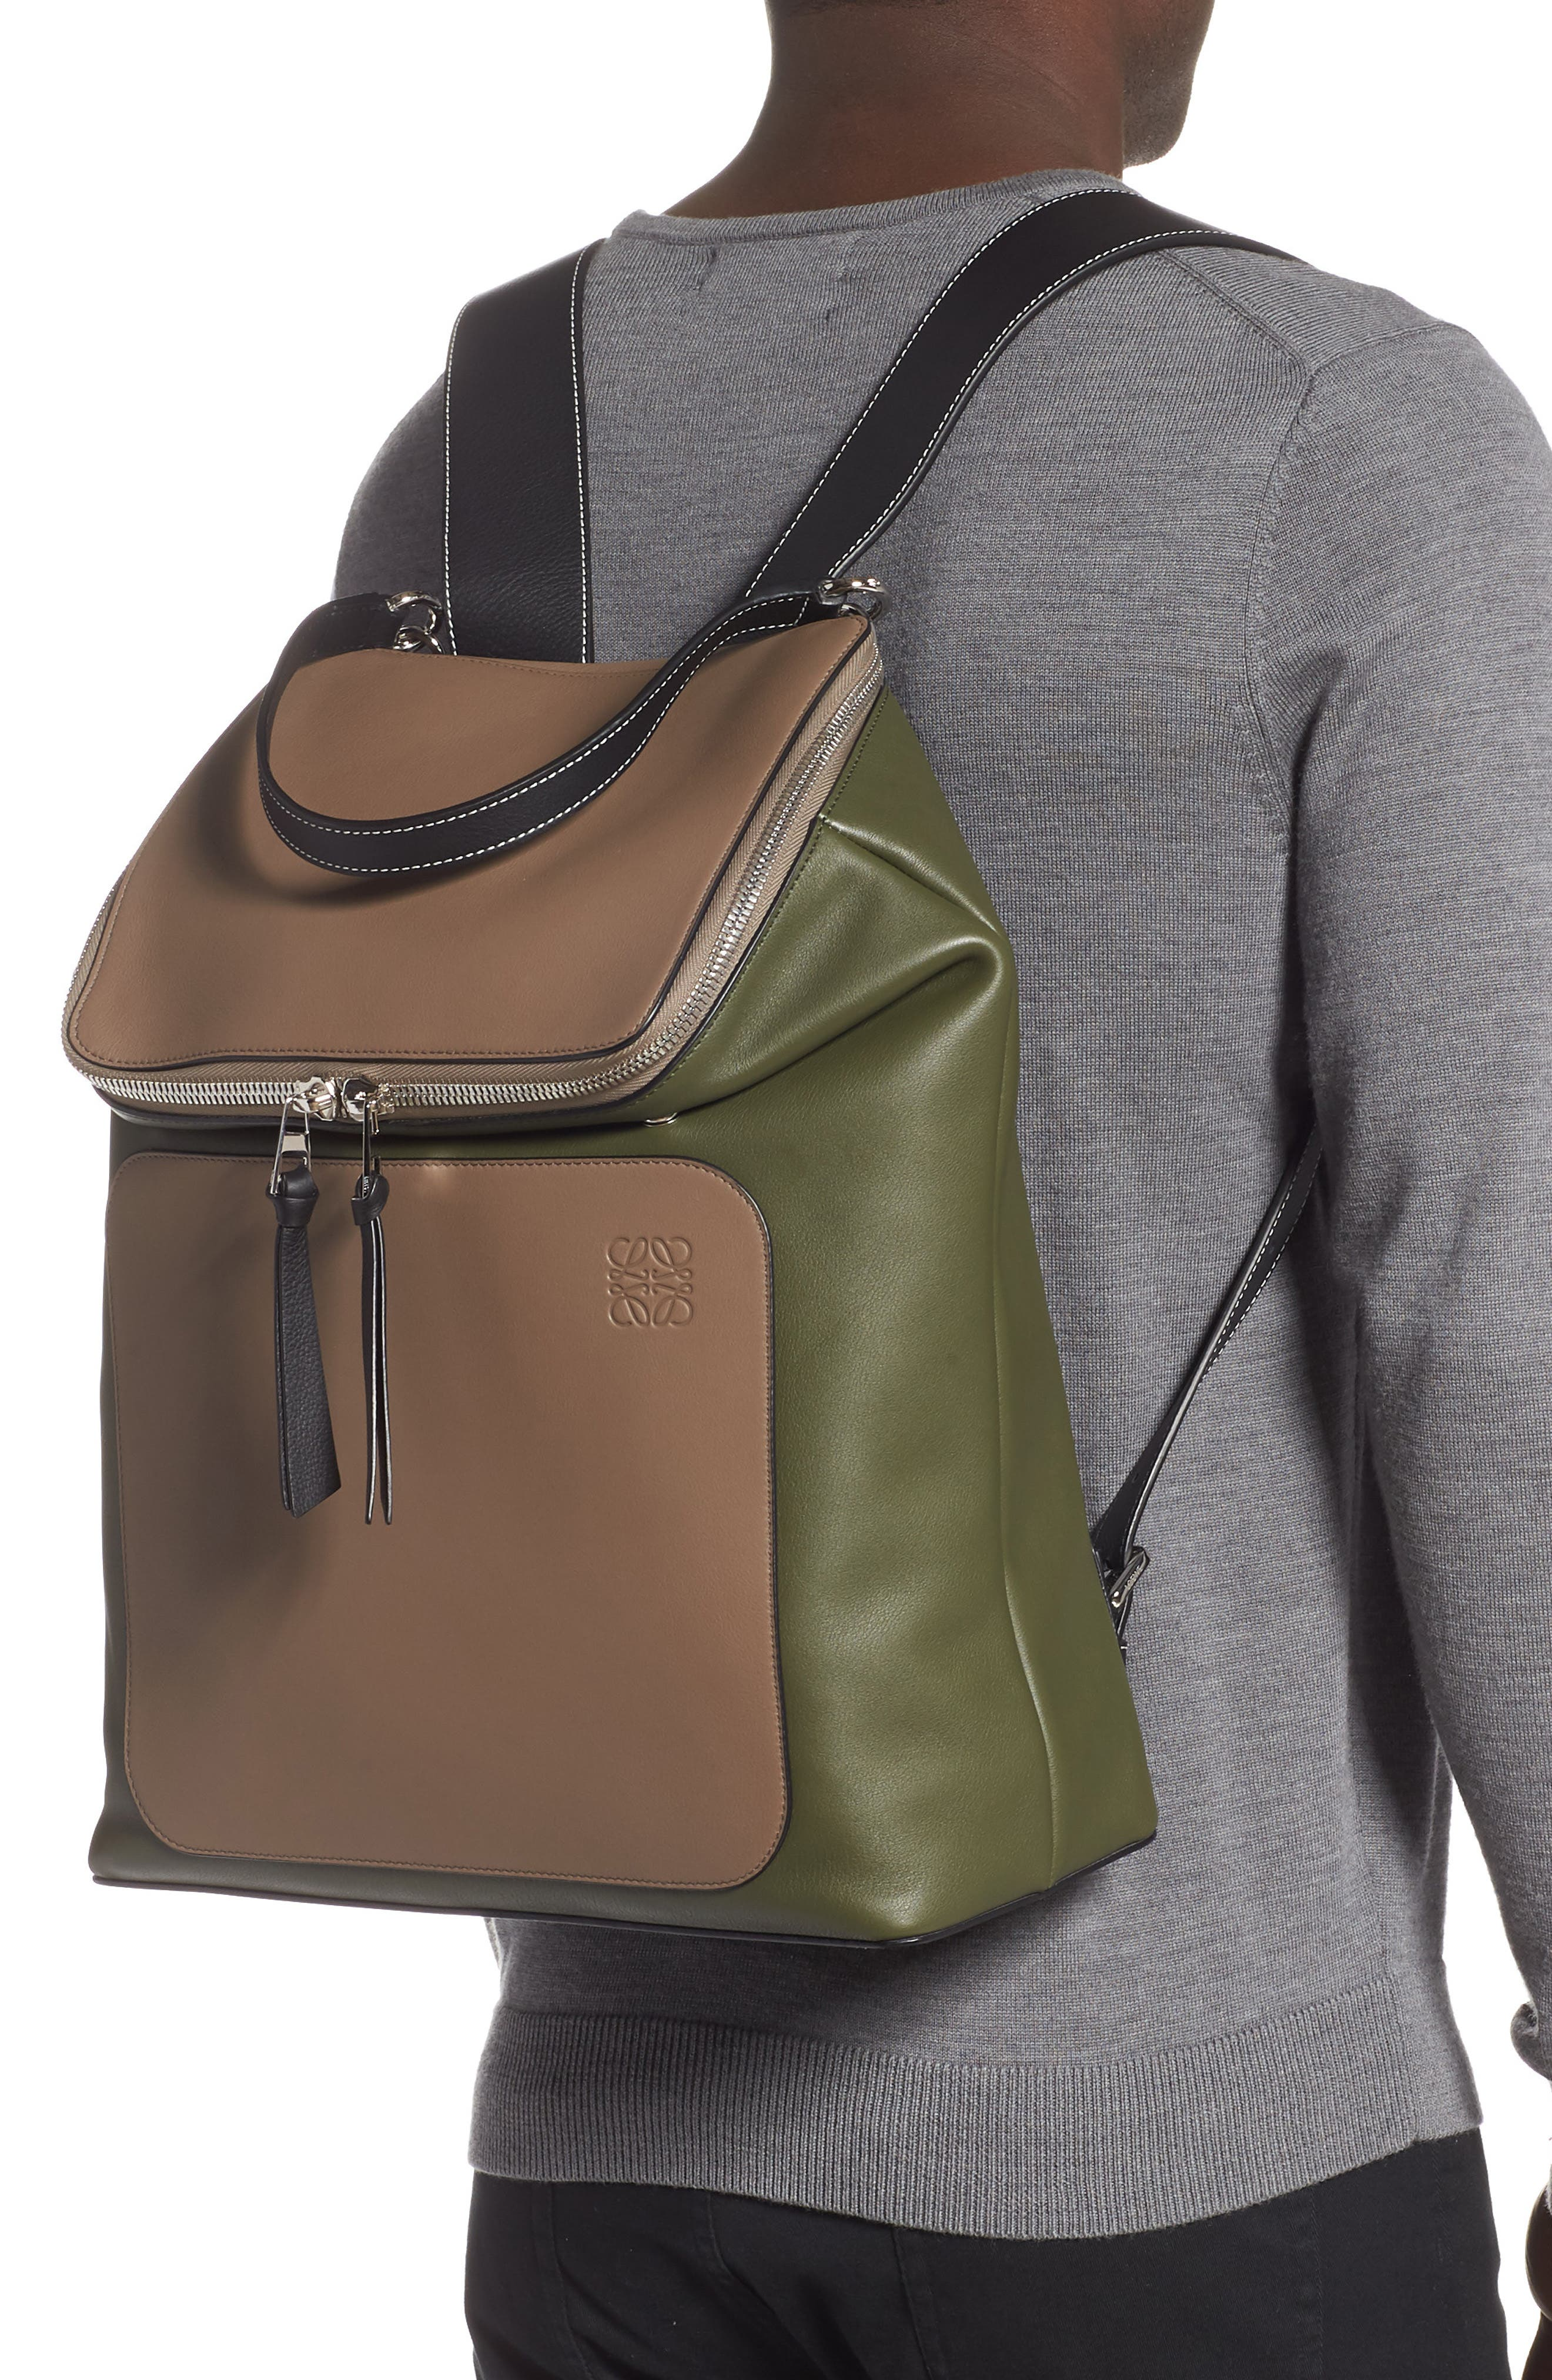 LOEWE, Goya Backpack, Alternate thumbnail 2, color, DARK TAUPE/ GREEN MILITARY